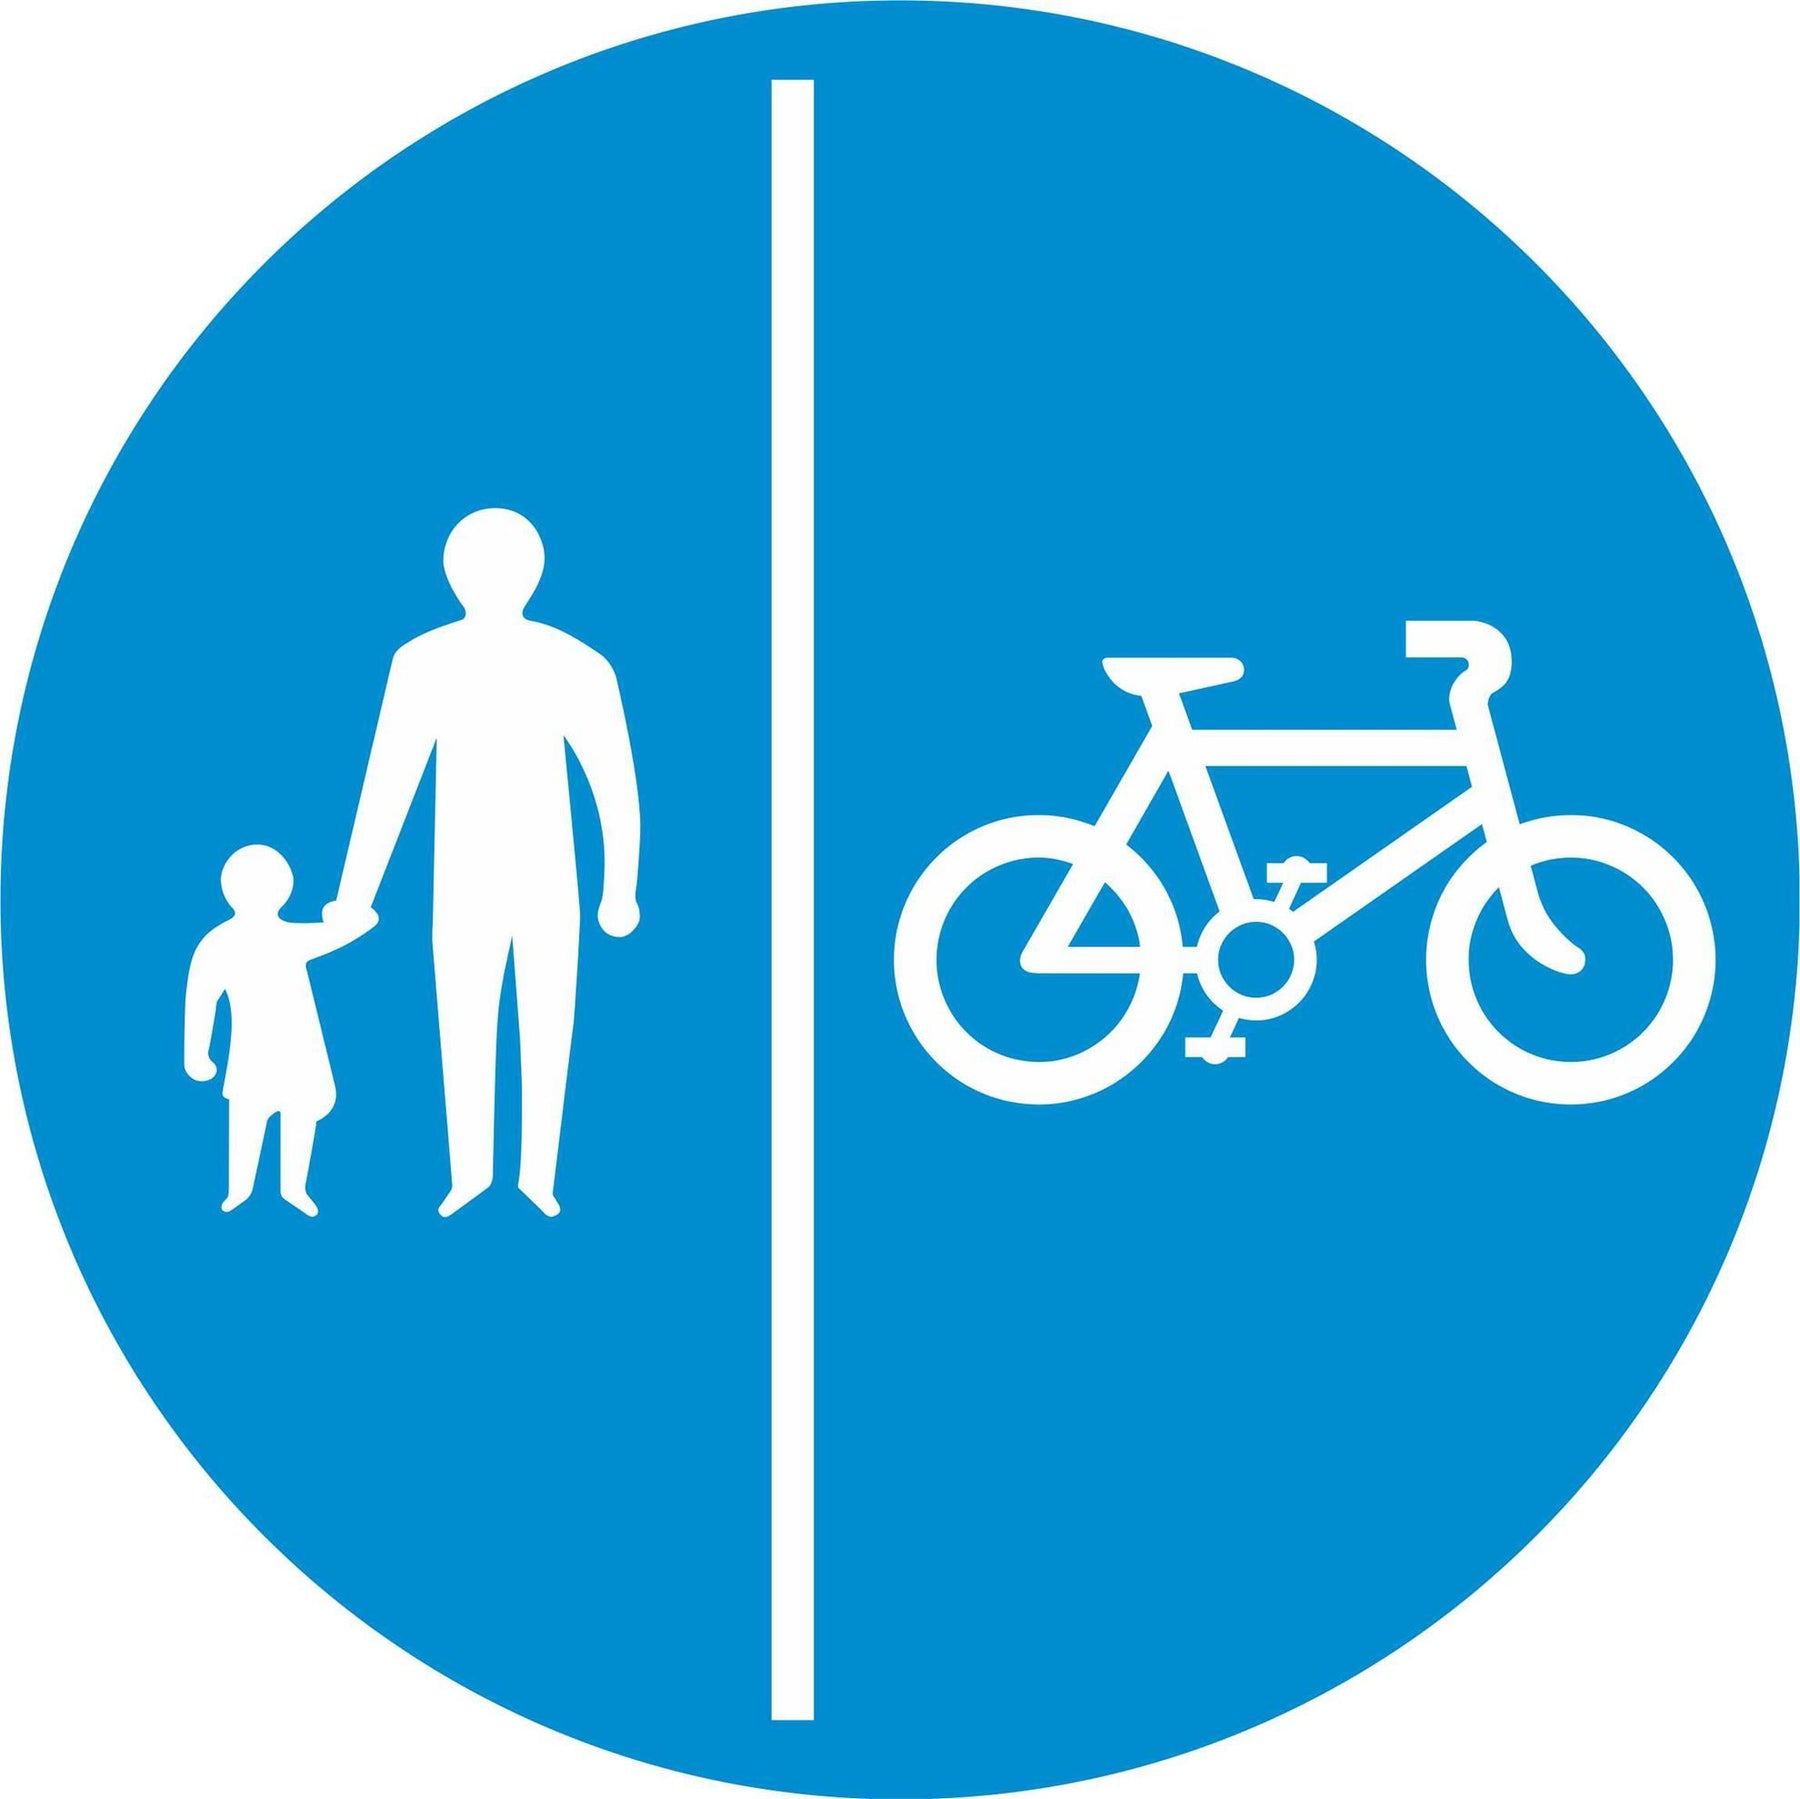 Segregated pedal cycle and pedestrian route - Road Traffic Sign